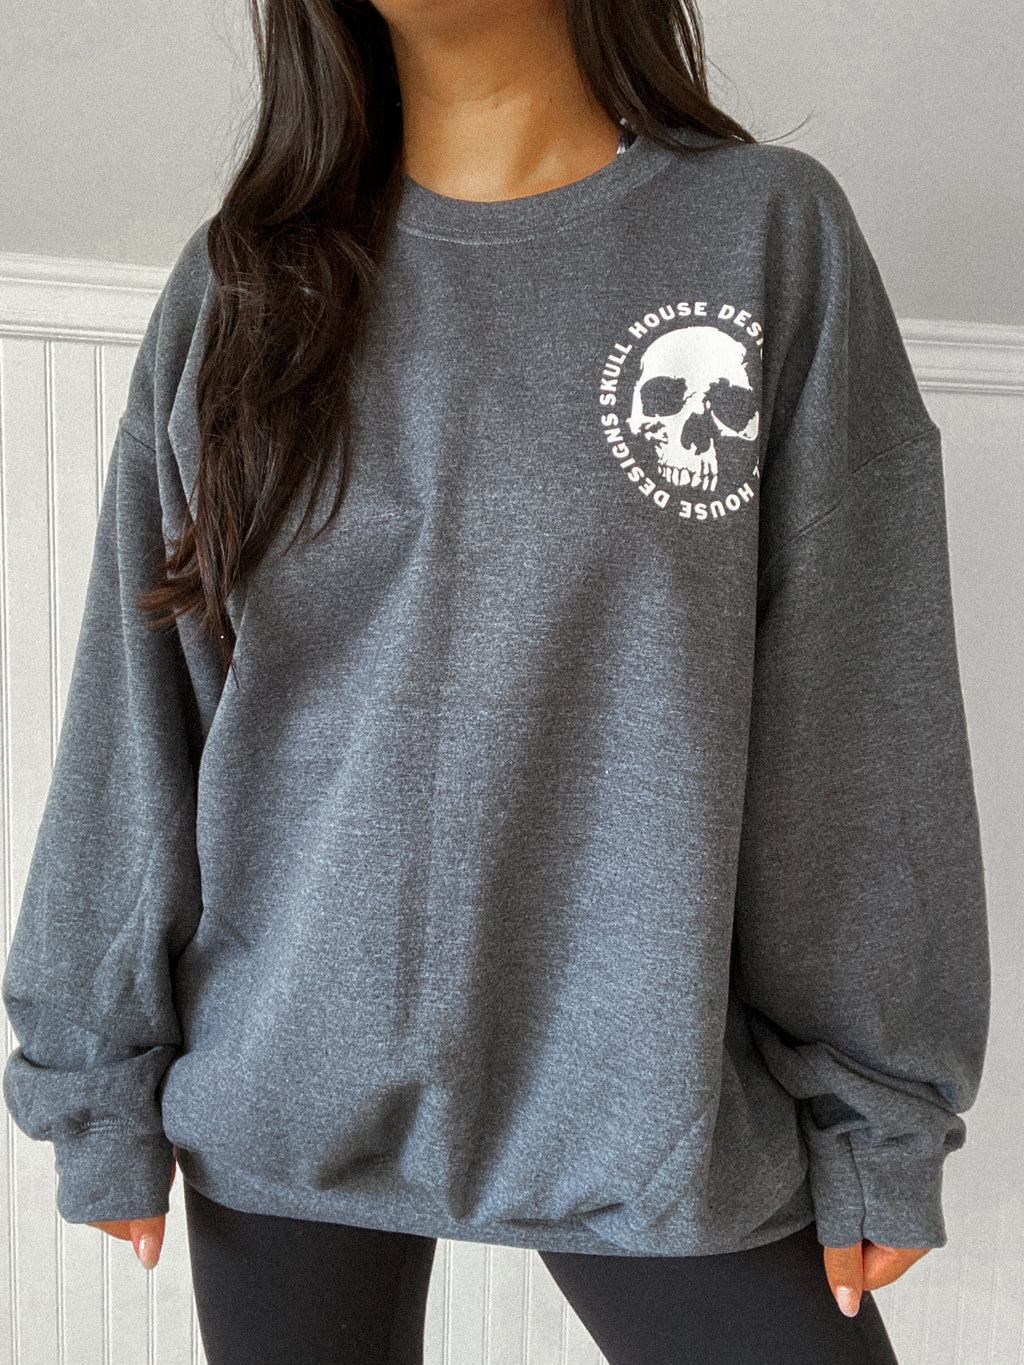 Skull House Oversized Sweater: Heather Grey